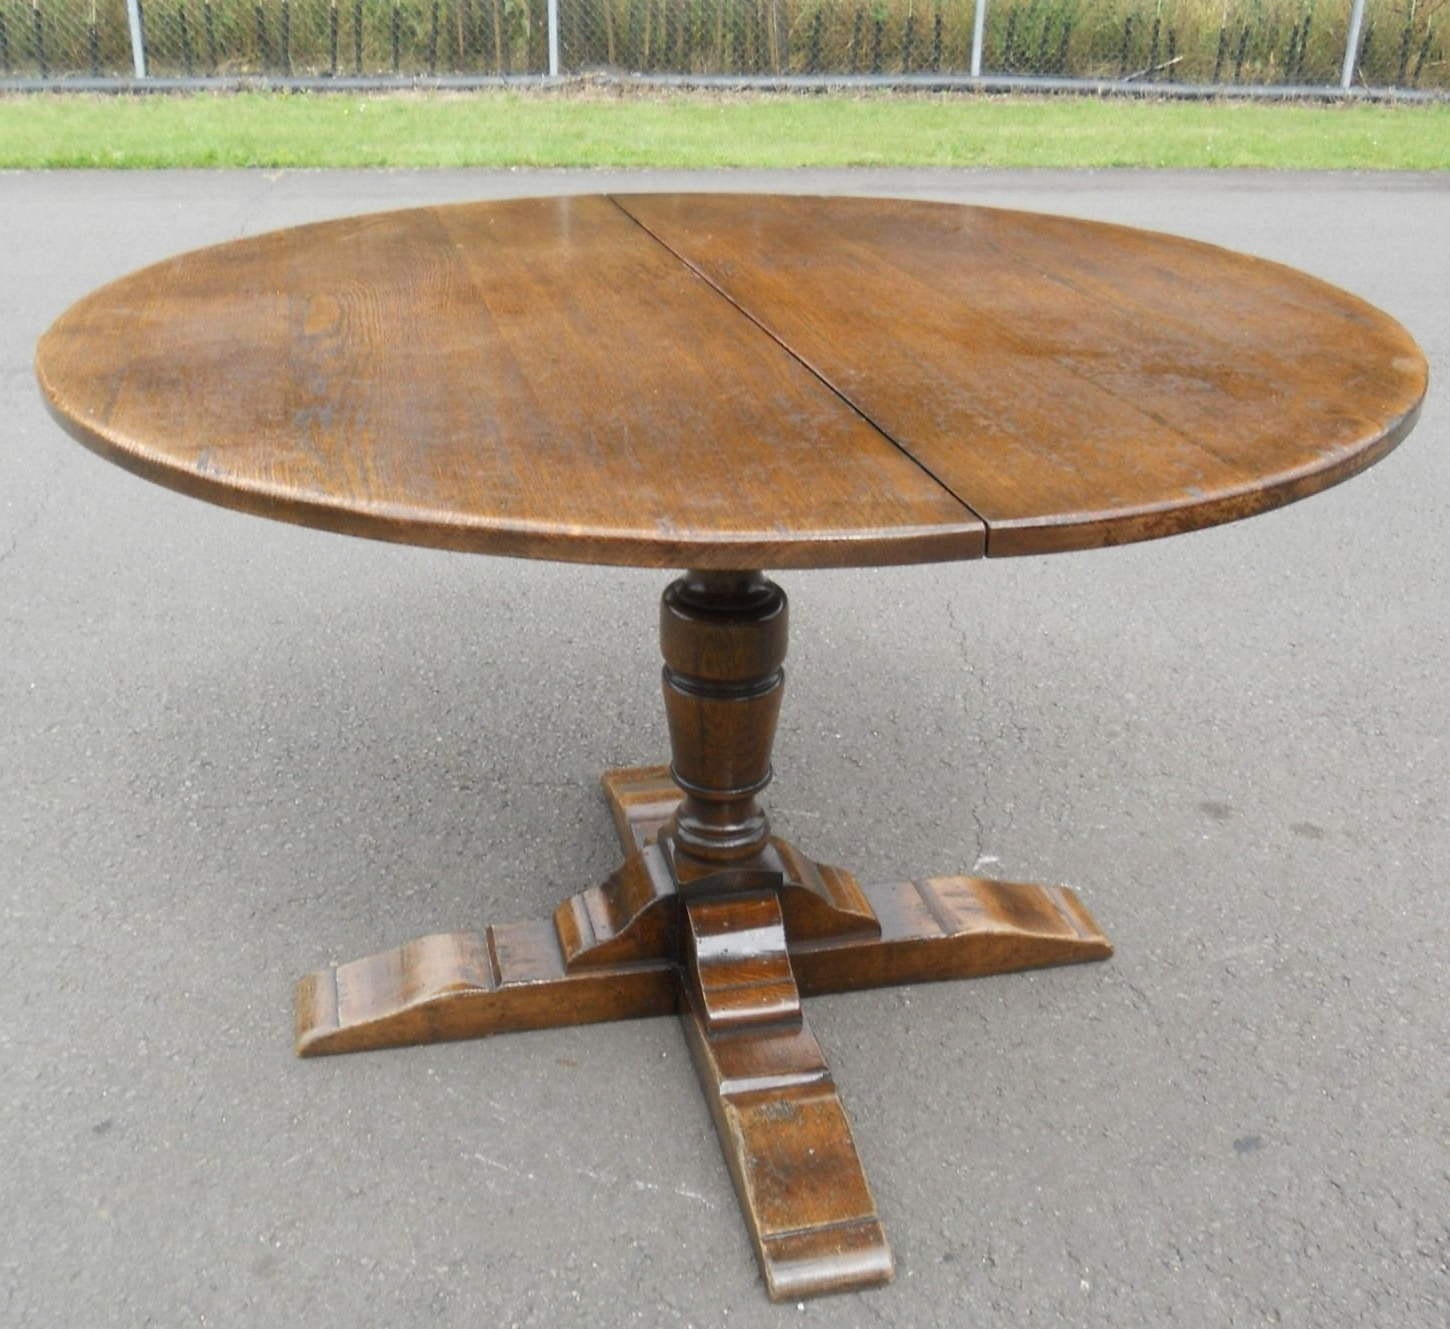 Newest Circular Oak Dining Tables For Sold – Round Oak Pedestal Extending Dining Table To Seat Eight (View 21 of 25)